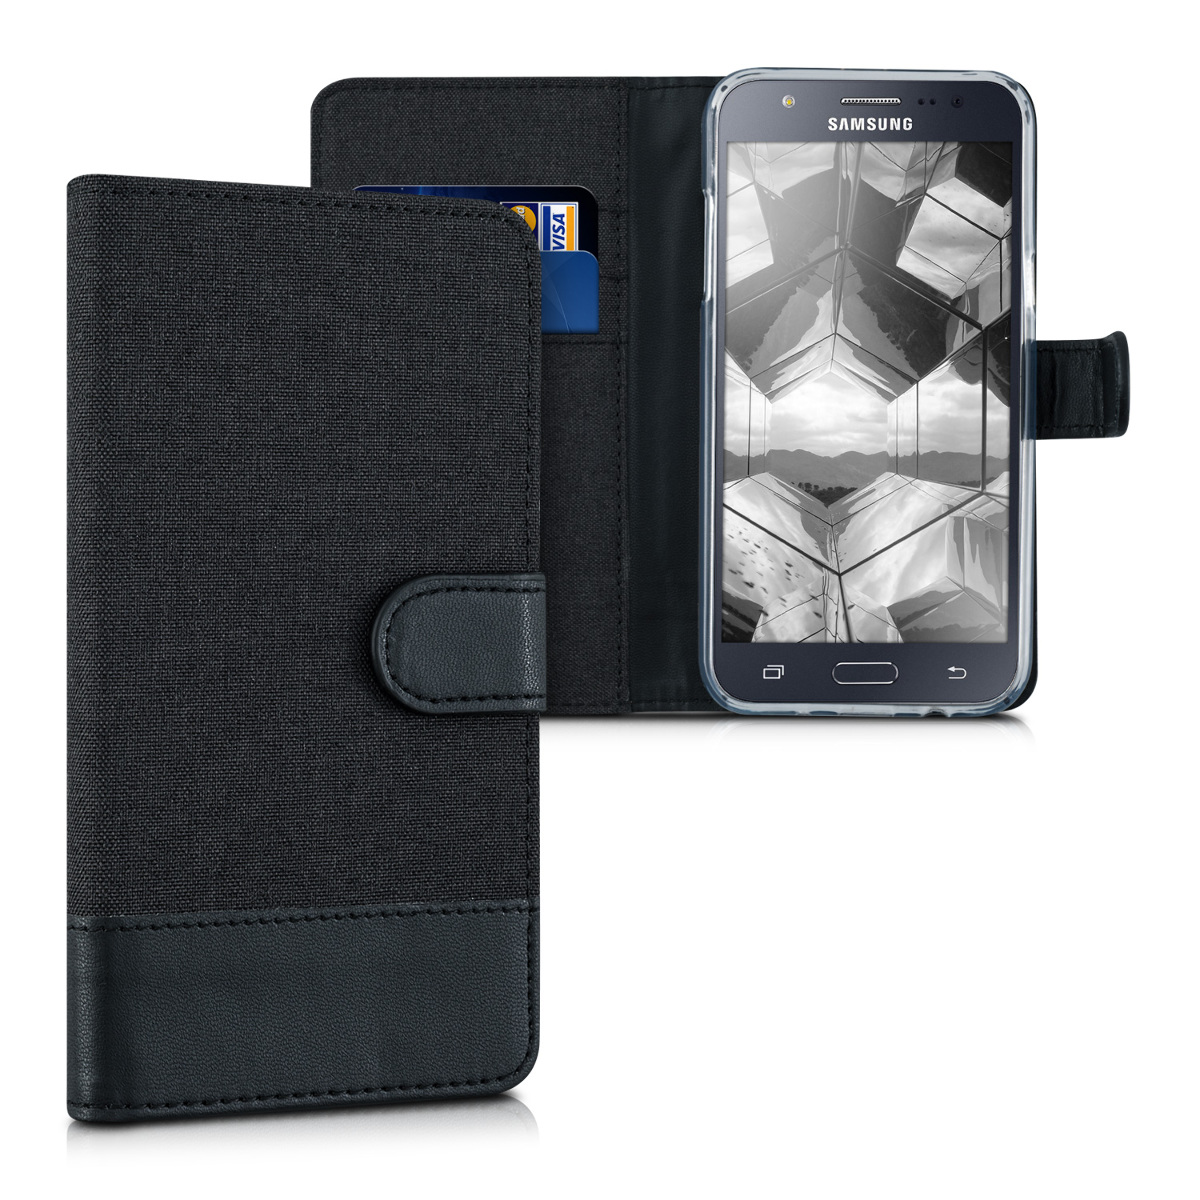 kwmobile Wallet Case for Samsung Galaxy J5 (2015) - Fabric and PU Leather Flip Cover with Card Slots and Stand - Anthracite / Black